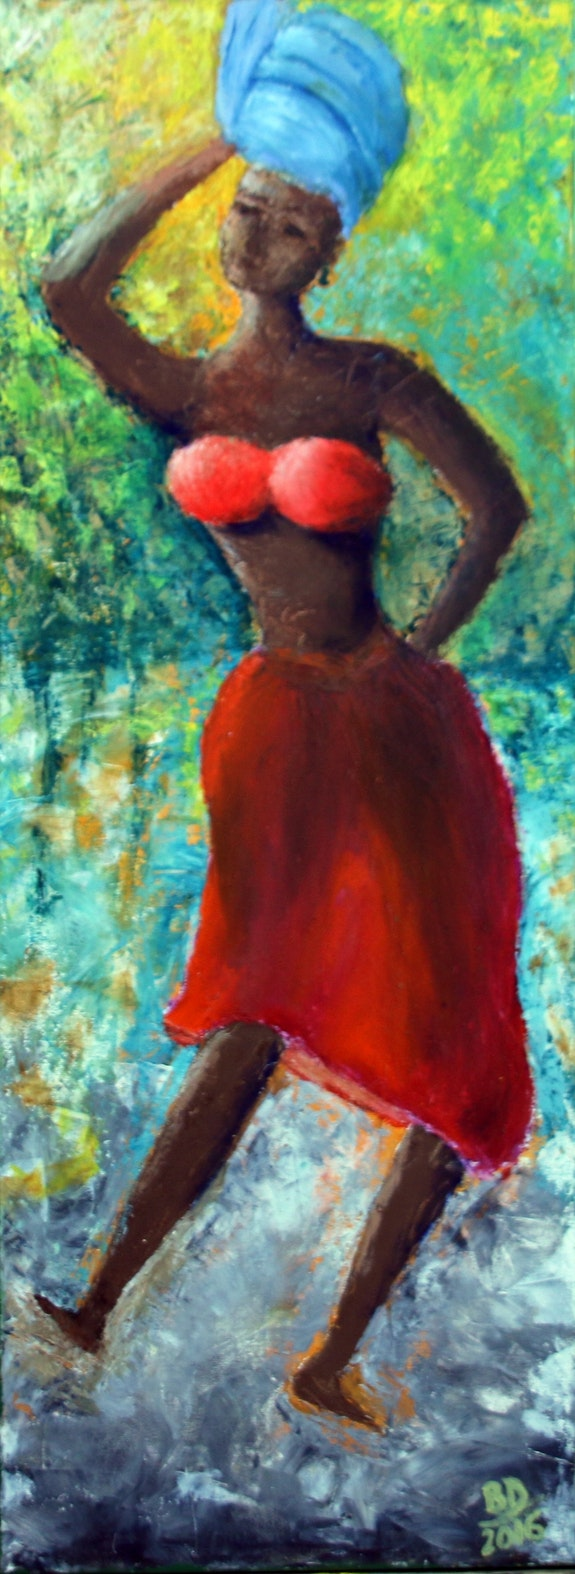 African woman - Dancing in the woods. Biplab Datta Biplab